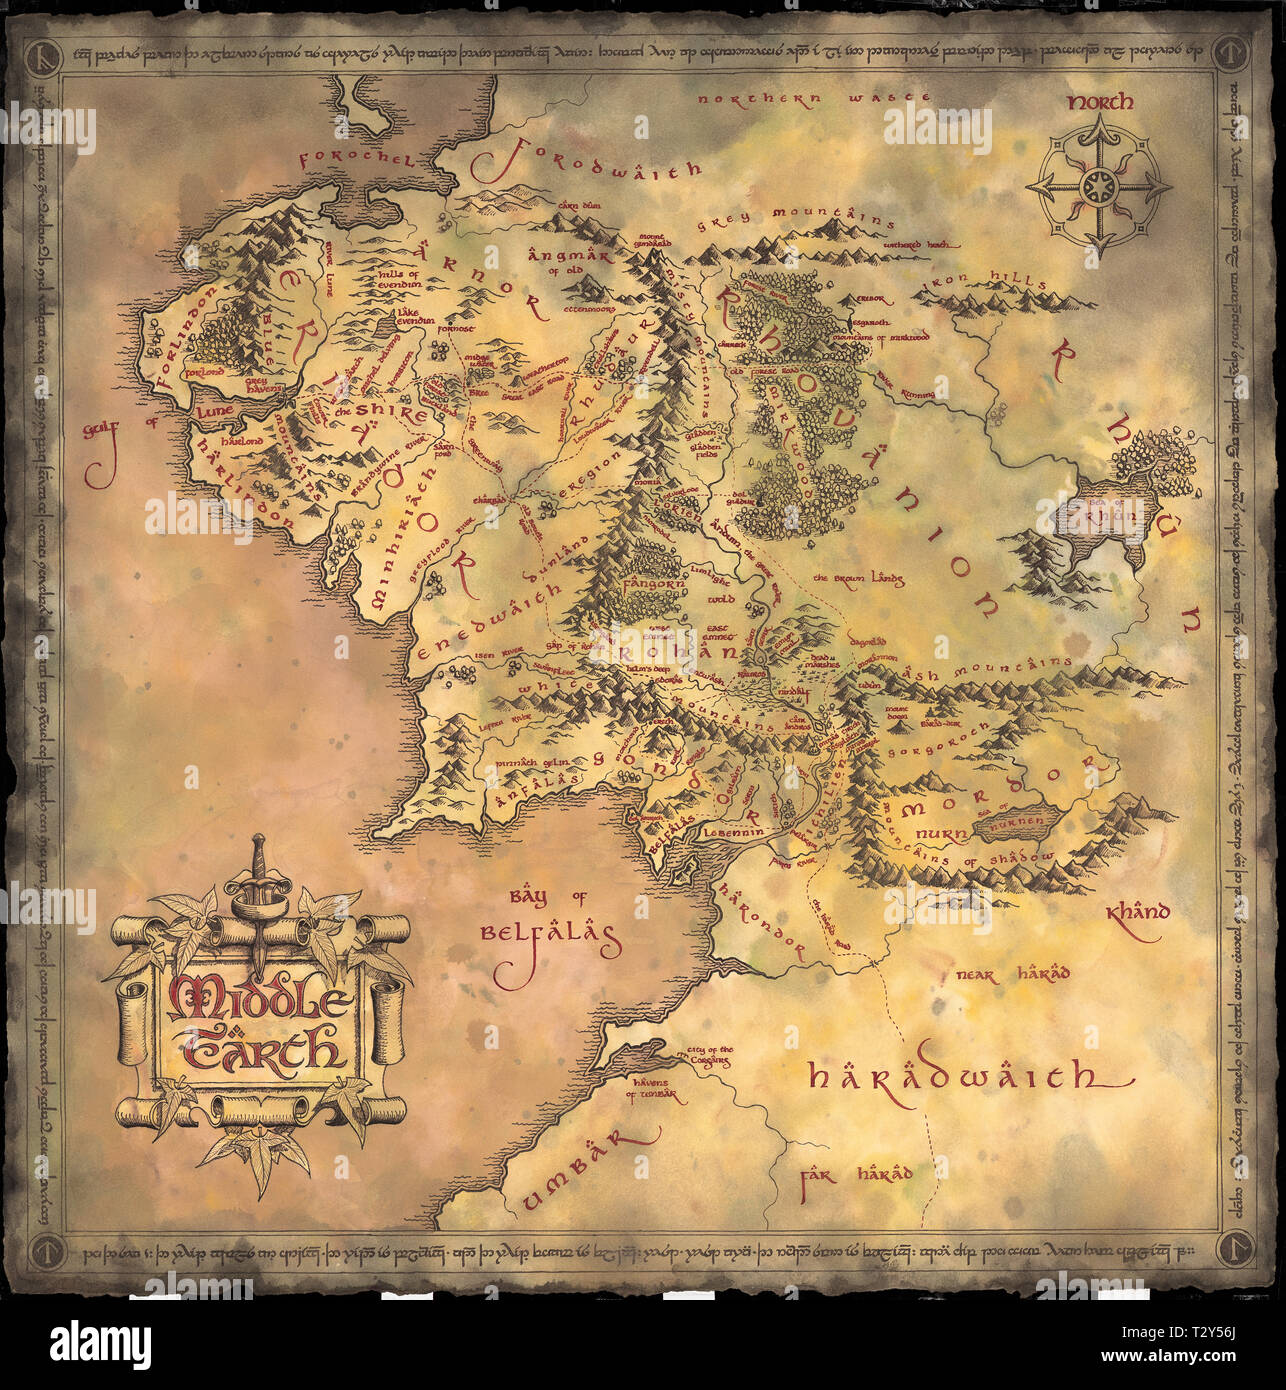 Middle Earth Map Stock Photos & Middle Earth Map Stock ...